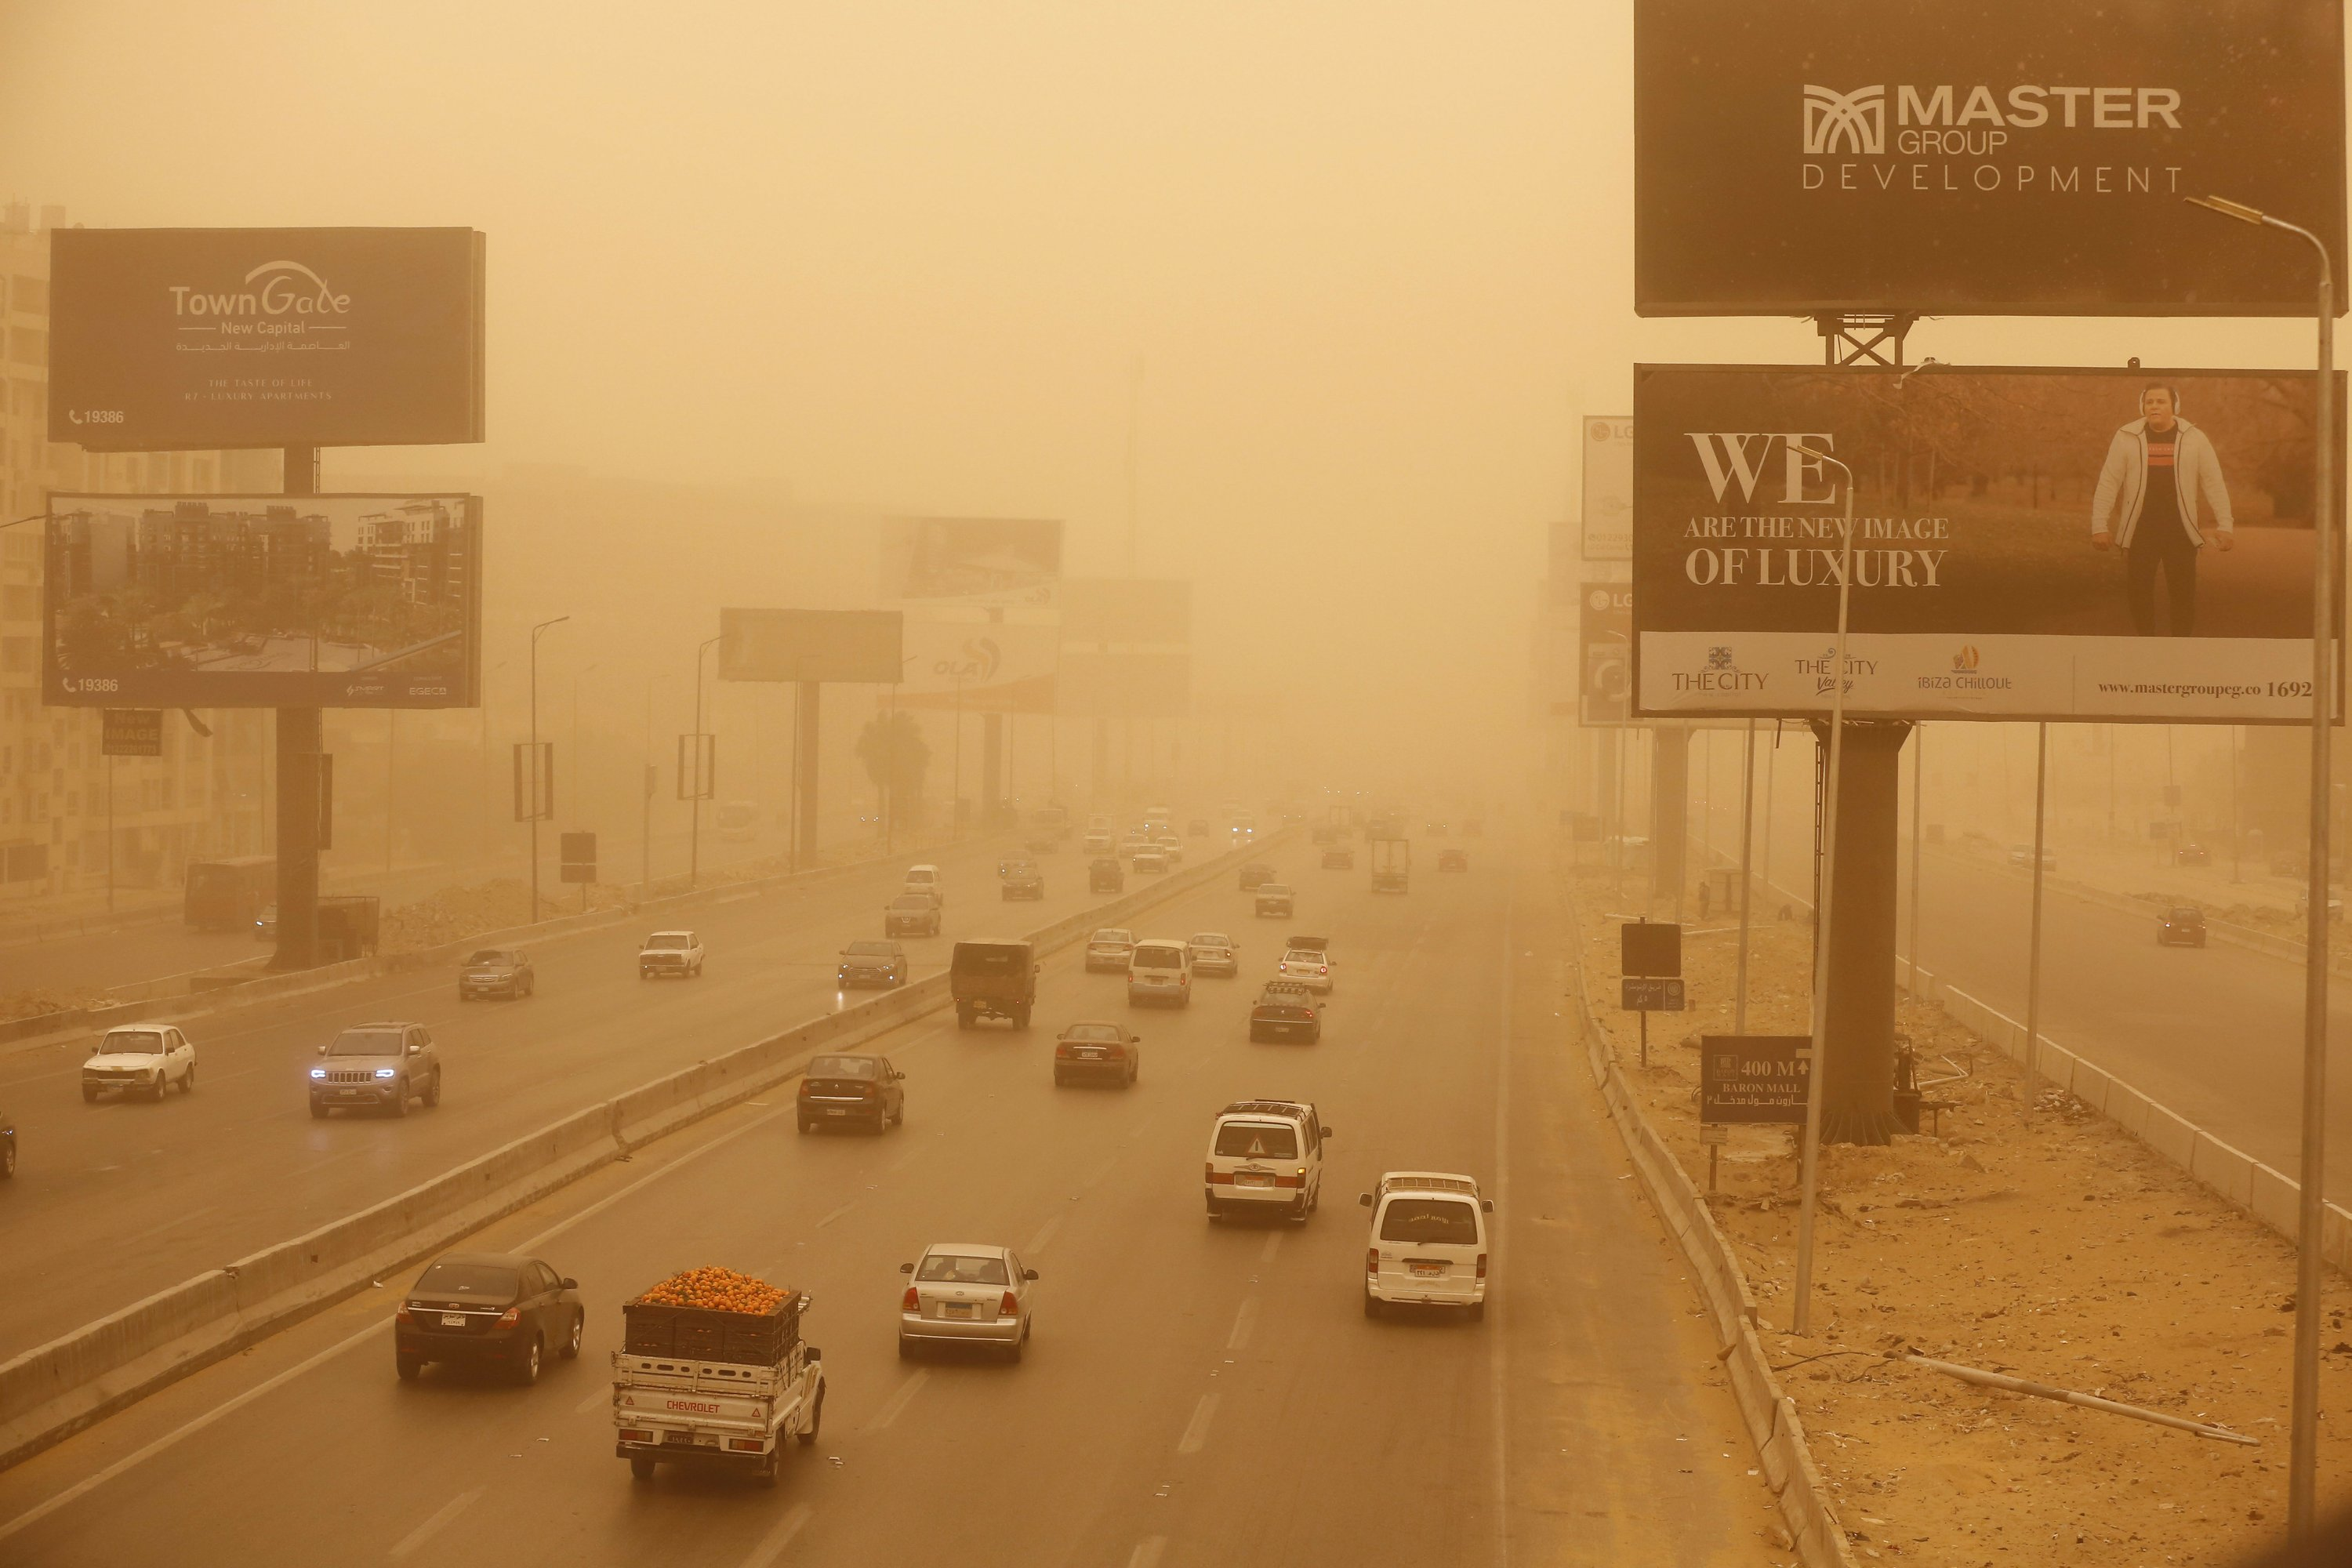 Weather front brings sandstorms, hail, rain to Middle East